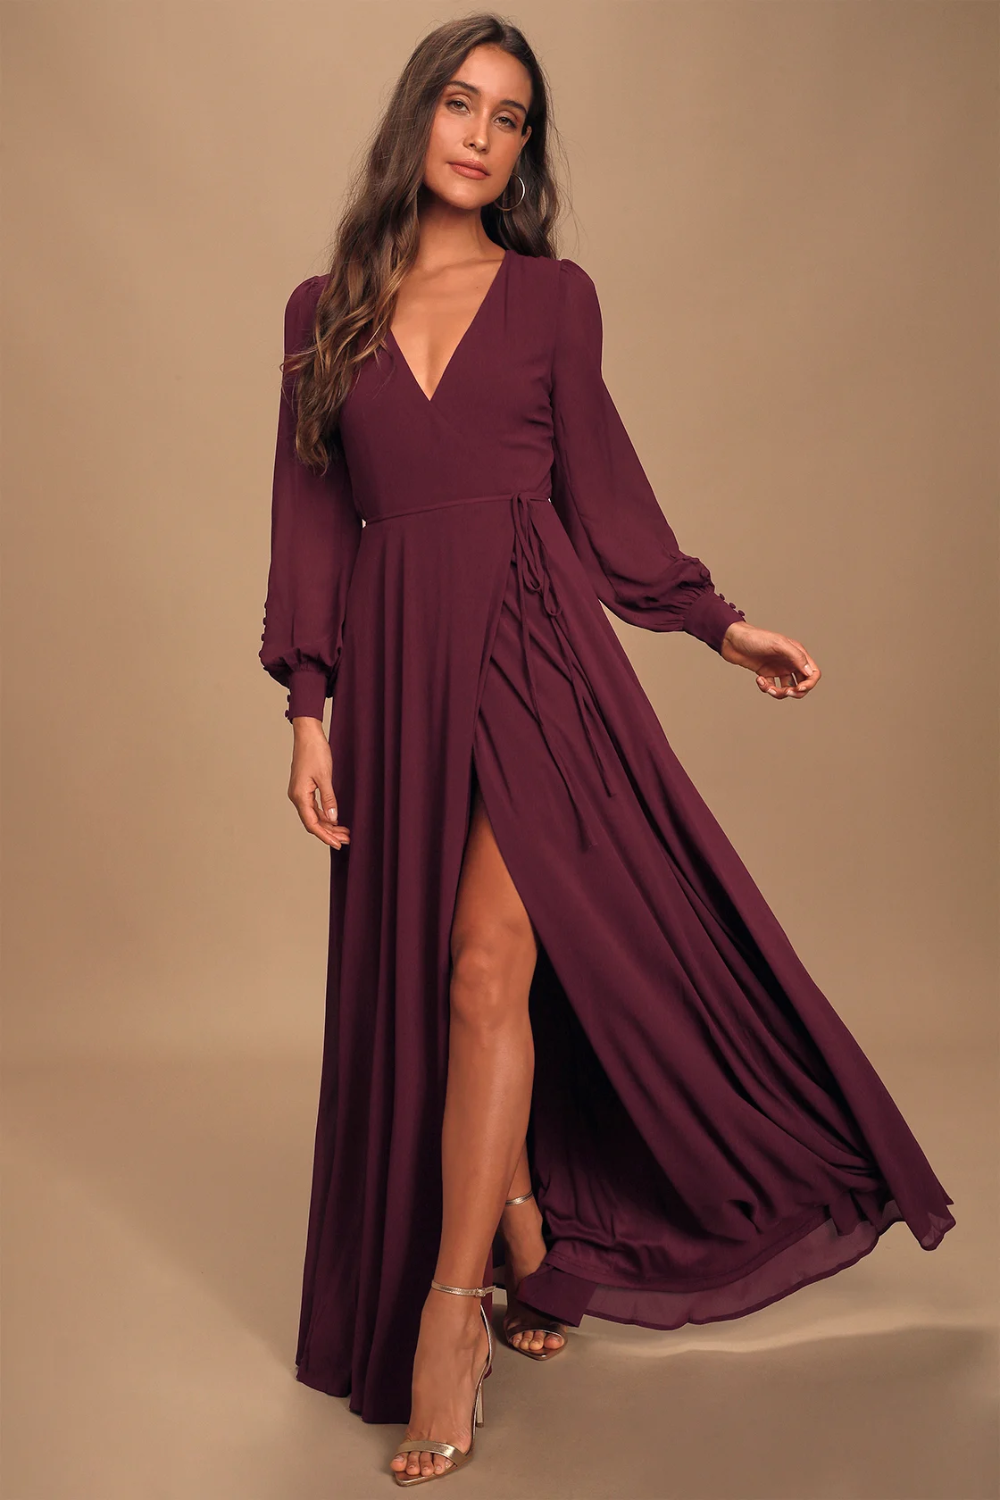 My Whole Heart Plum Long Sleeve Wrap Dress In 2020 Long Sleeve Wrap Dress Long Sleeve Dress Formal Bridesmaid Dresses With Sleeves